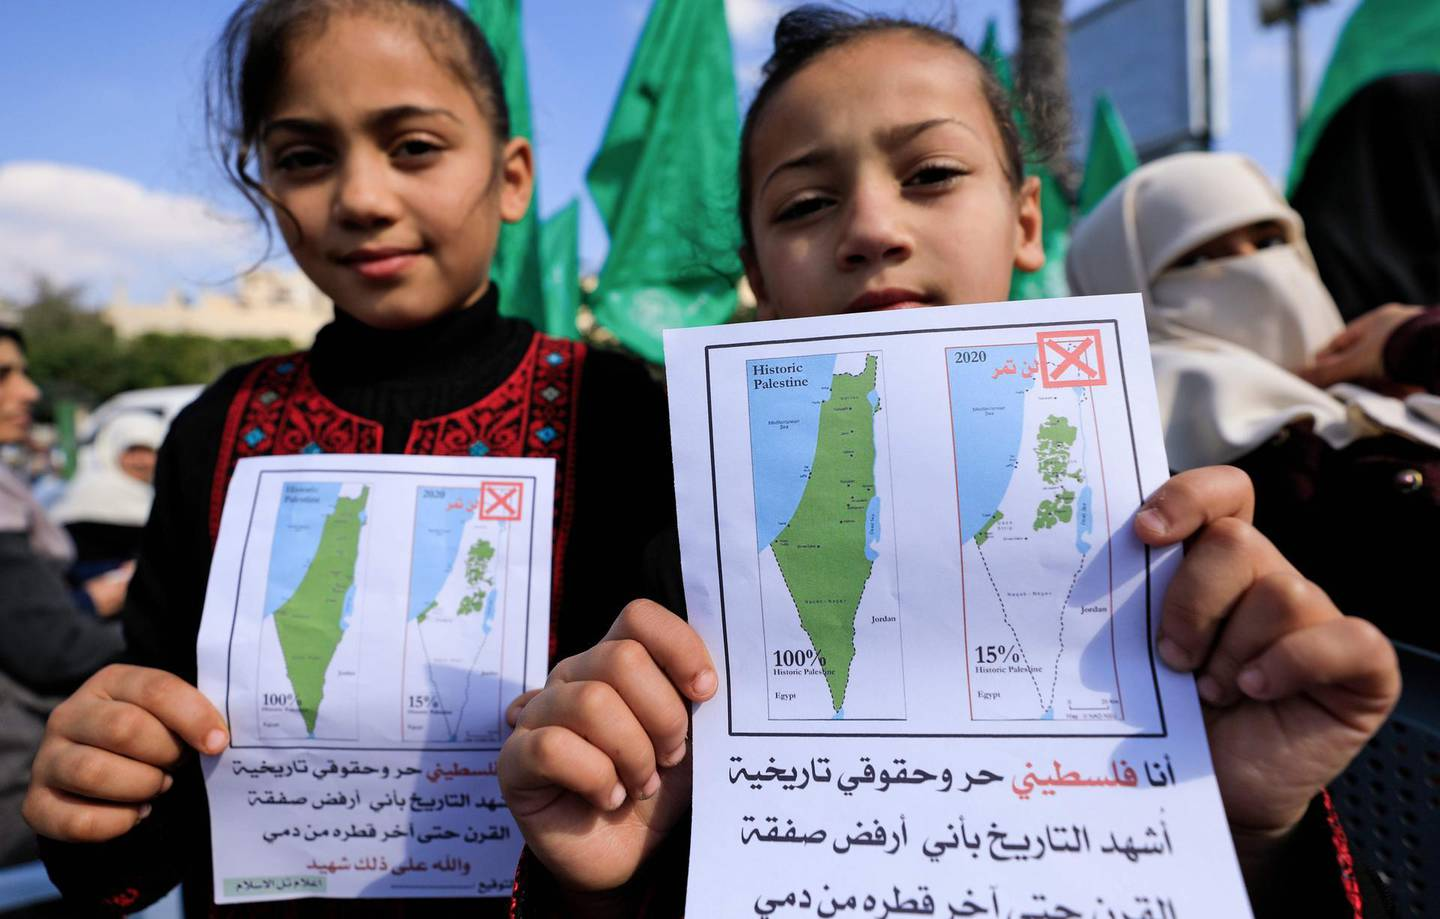 Young Palestinian girls hold petitions with a map of British mandate Palestine (L) and a current map of the Palestinian territories without Israeli-annexed areas and settlements, as they take part in a demonstration by women supporters of the Hamas movement against the US President Donald Trump plan for Middle East, in Gaza City on February 5, 2020. / AFP / Emmanuel DUNAND